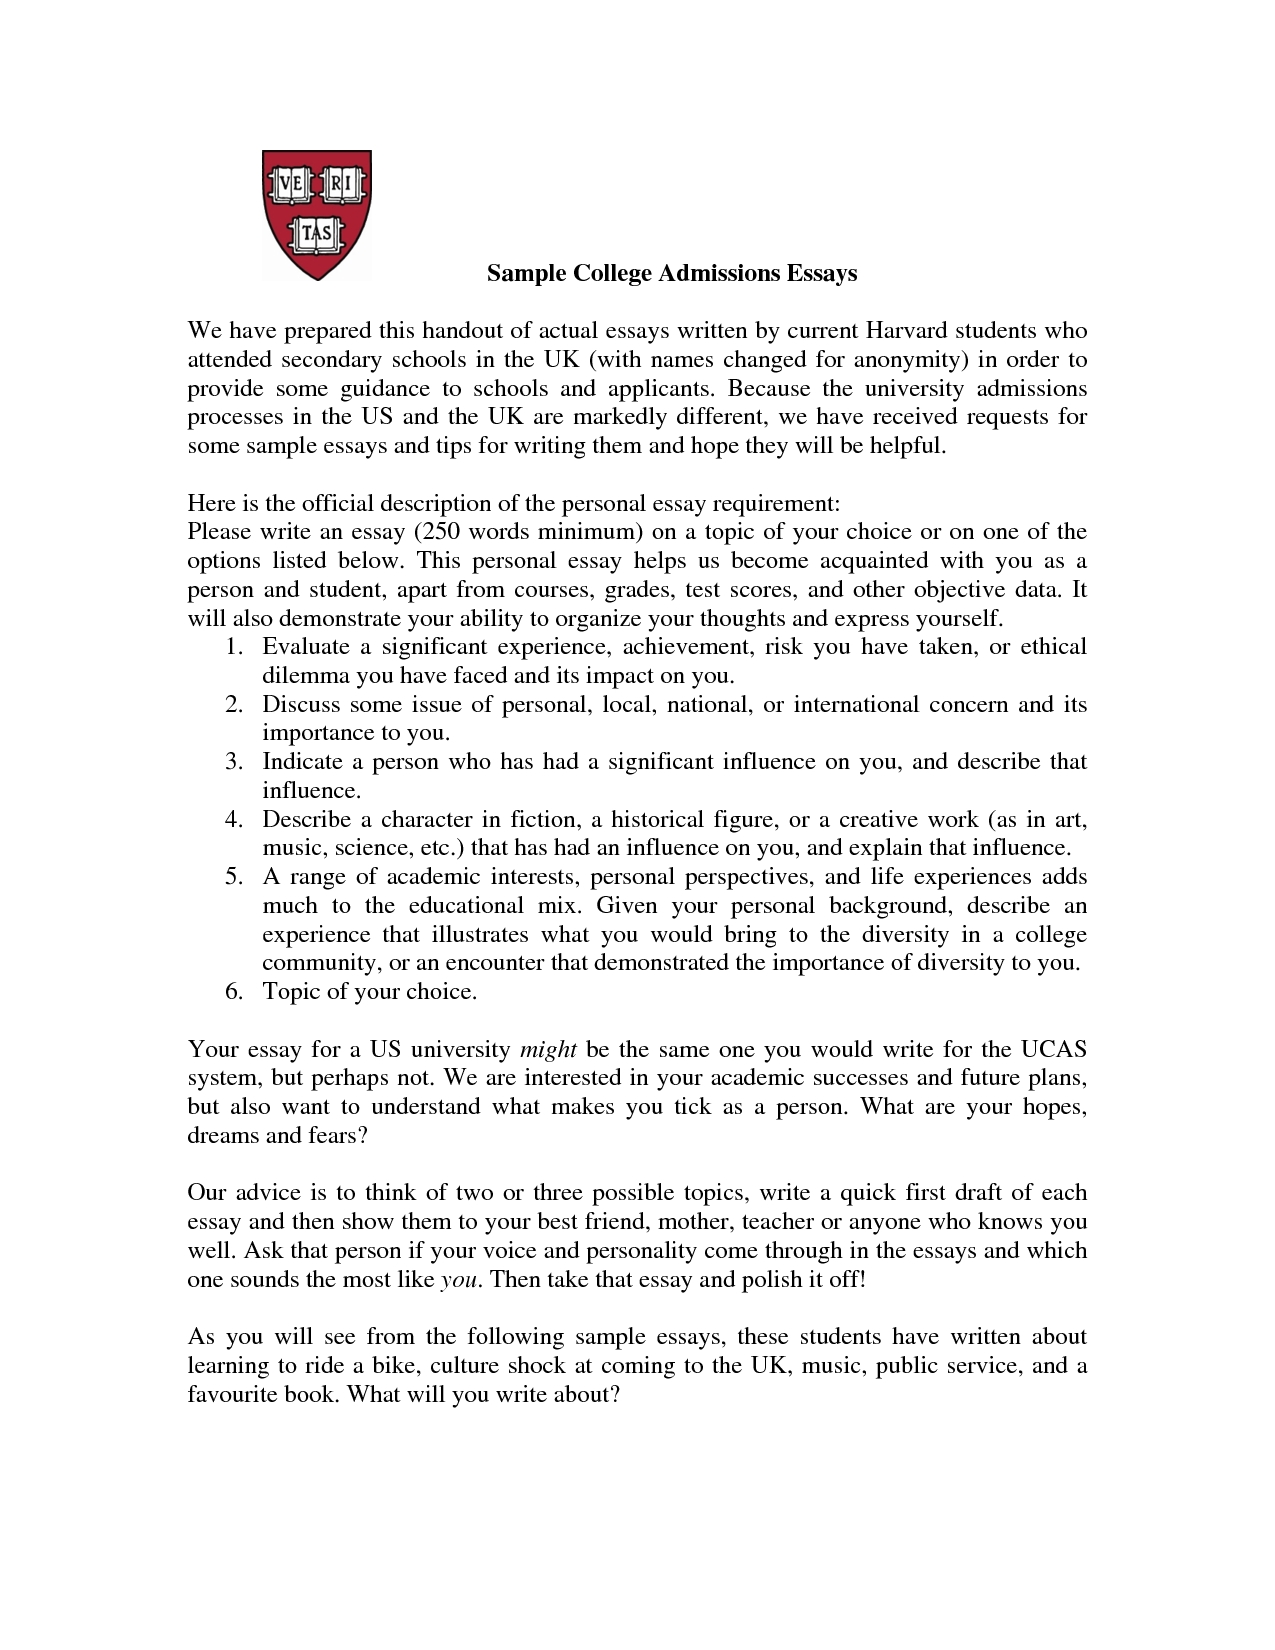 024 College Admissionssayxamples Writings Andssays Graduate Business Admissions Sample For School International Wit Counseling Psychology Nursing Samplesngineeringducation Freexample Surprising Essay Admission Masters How To Write An Degree In Full